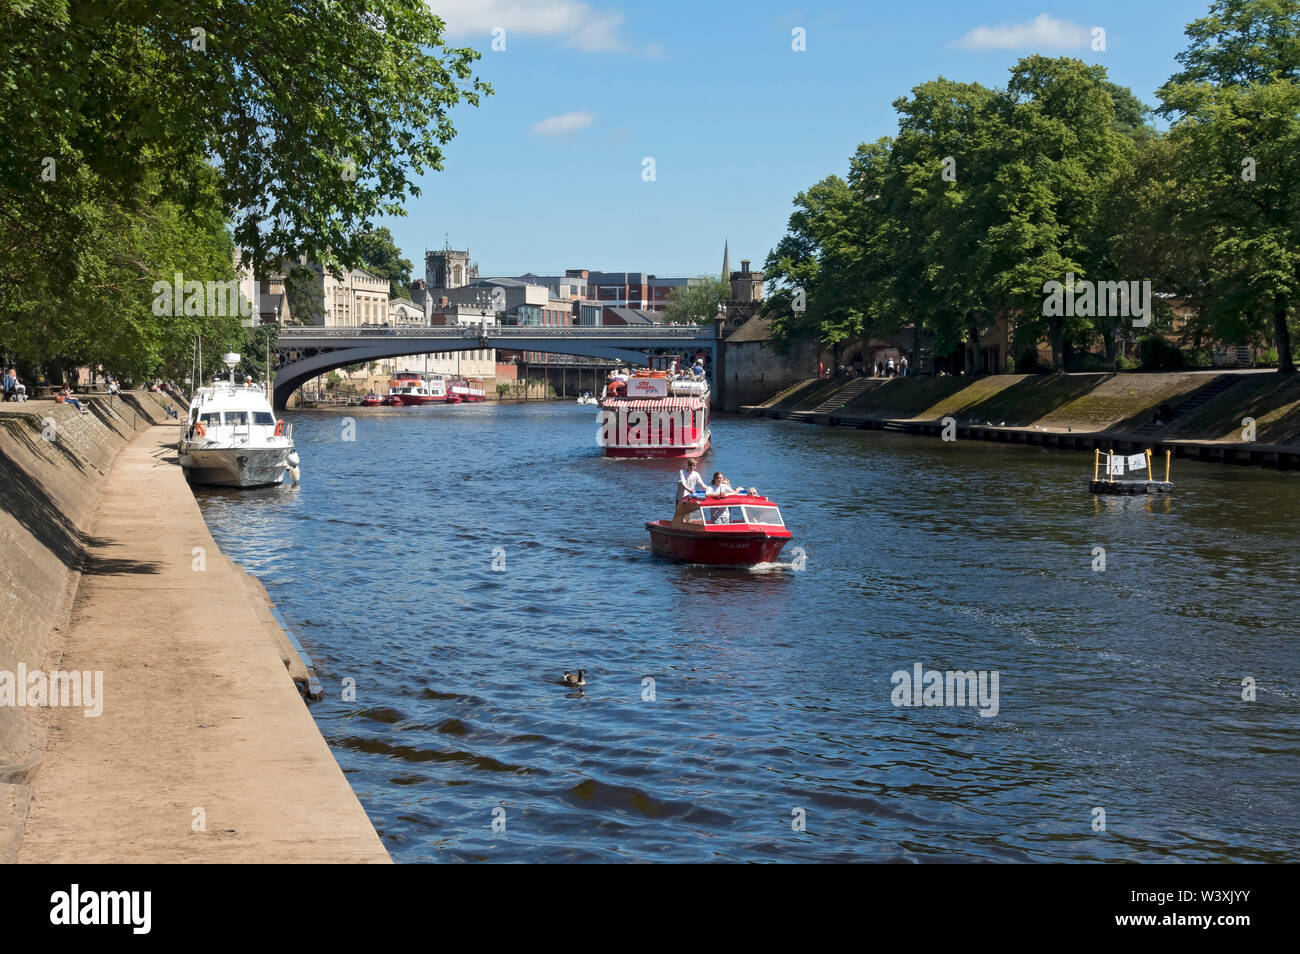 Tourists on boats on the River Ouse in summer York North Yorkshire England UK United Kingdom GB Great Britain Stock Photo